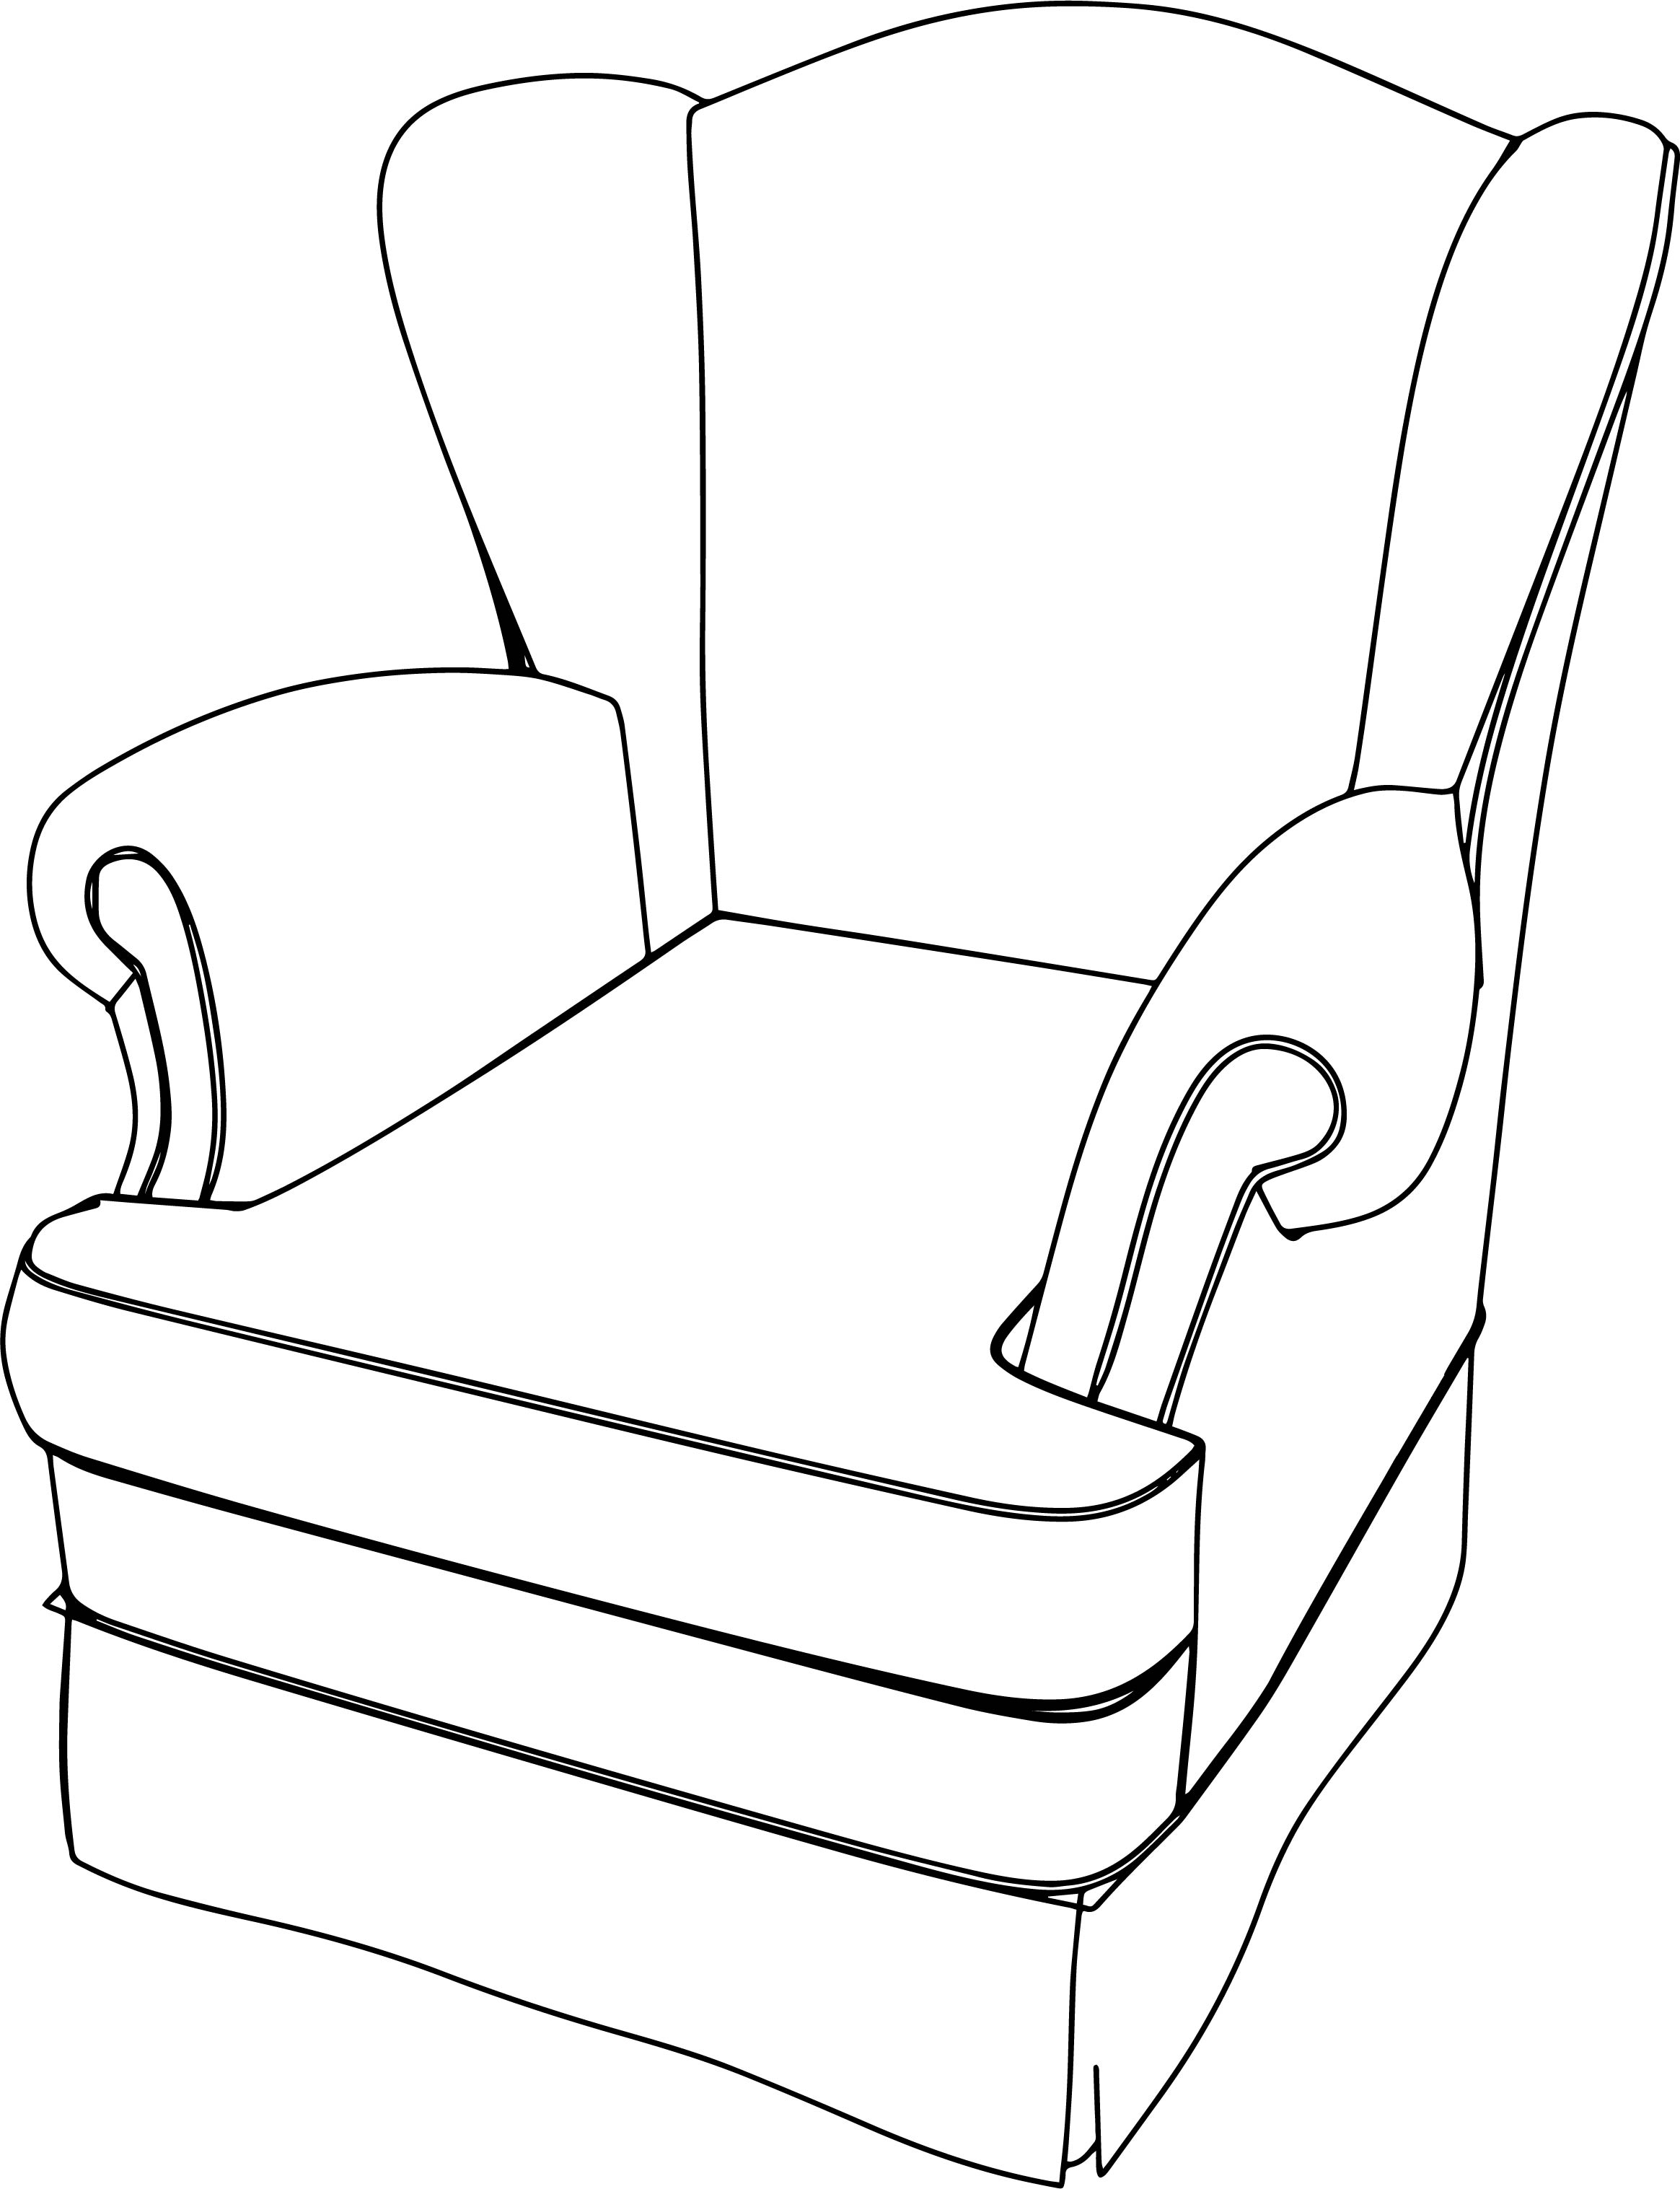 Classic Armchair English Coloring Page Wecoloringpage